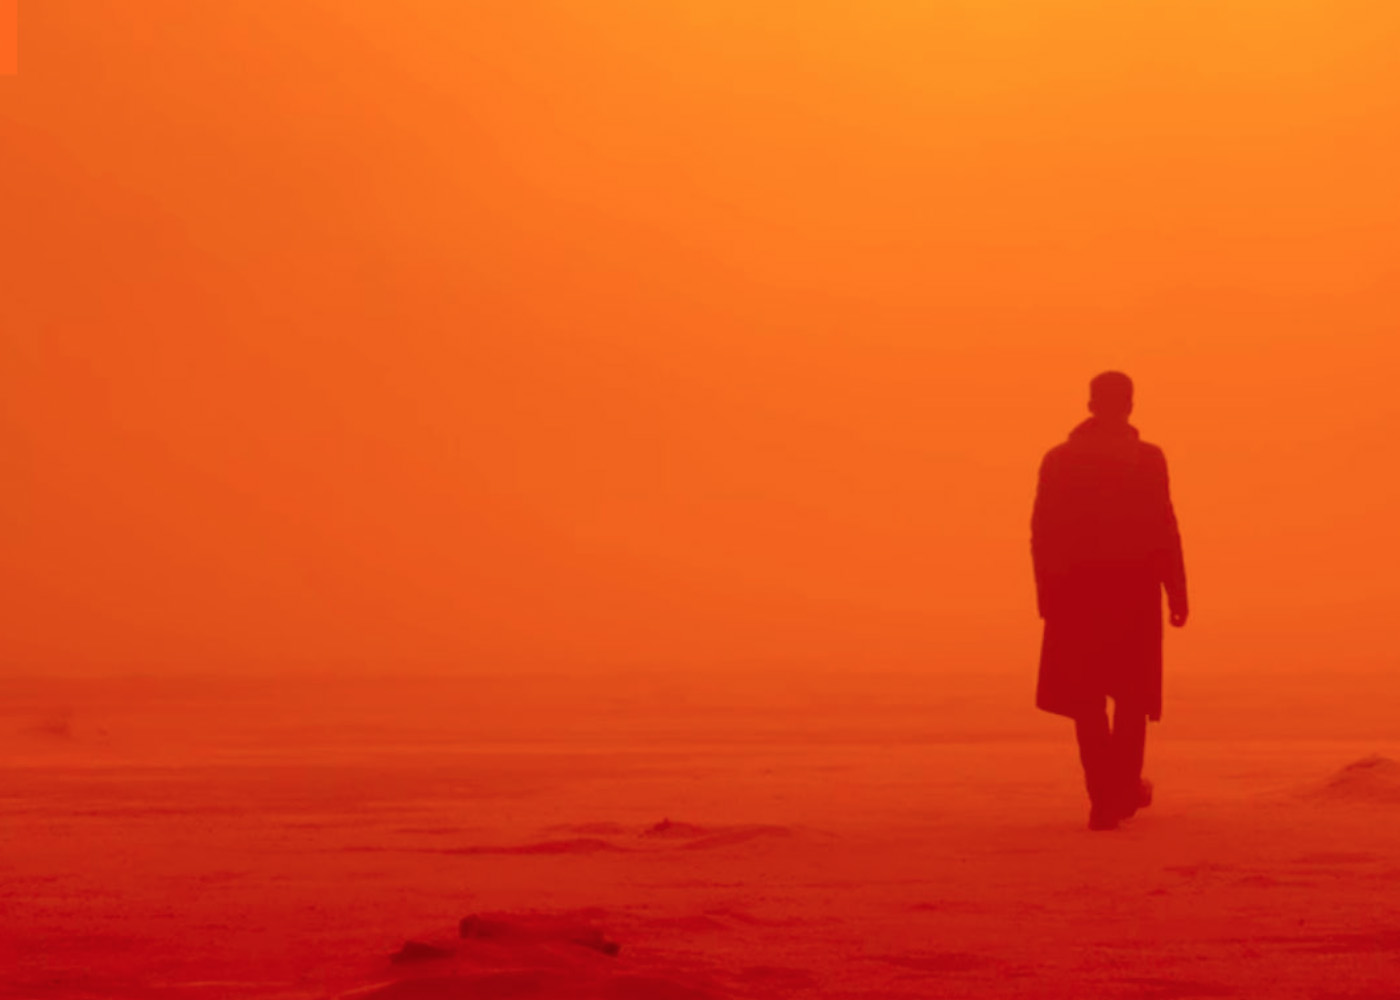 Blade Runner 2049 Gets a Gritty and Noir New Trailer